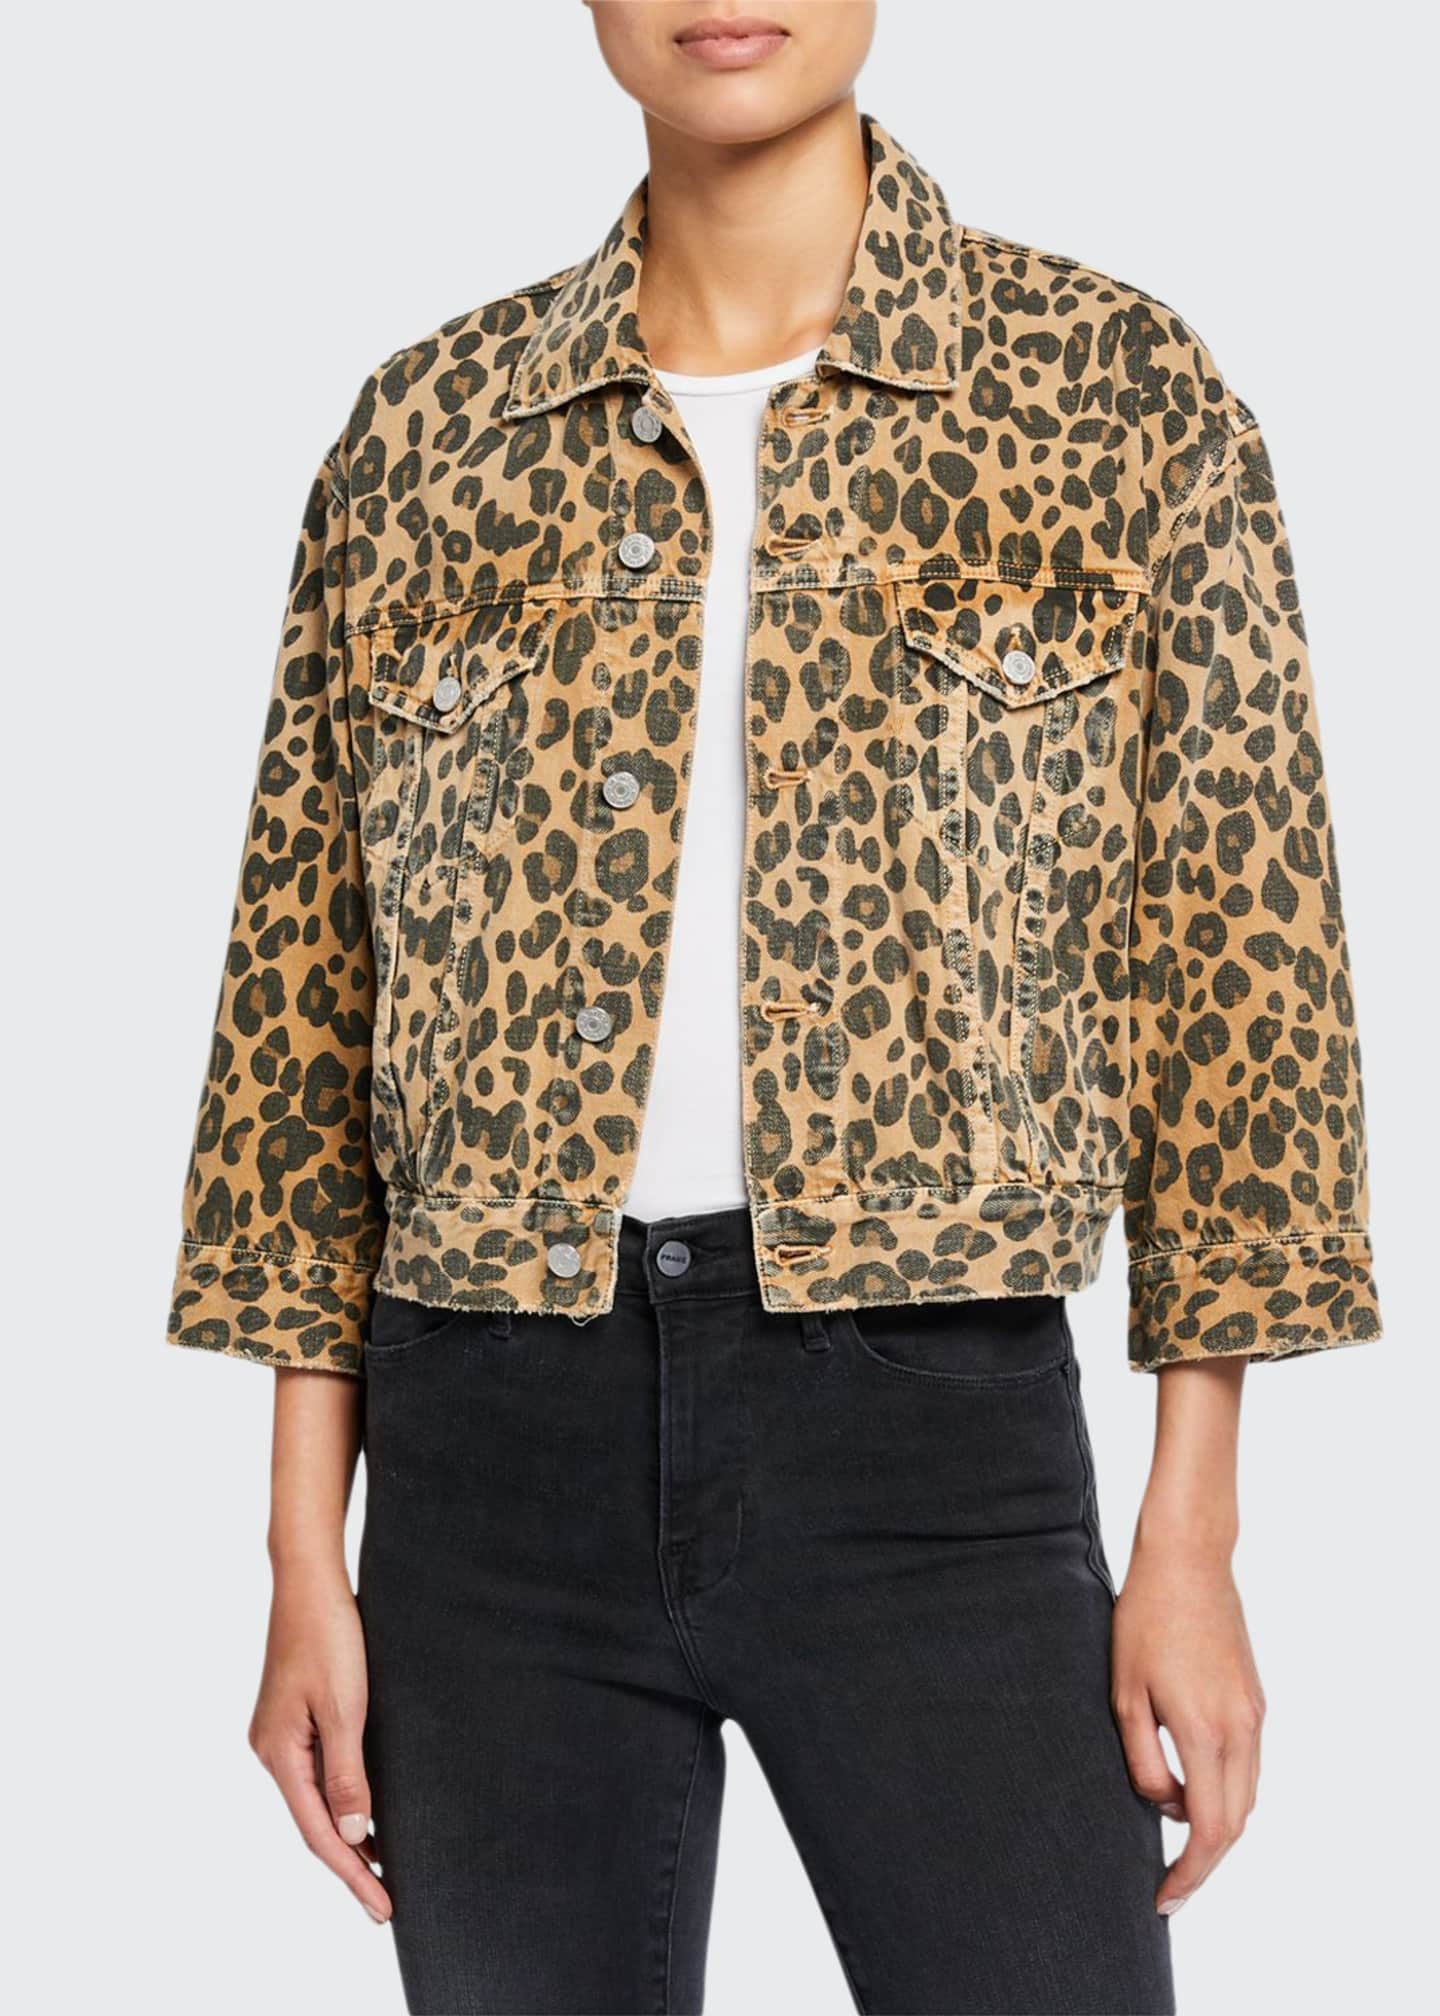 AMO Denim Lulu Cropped Leopard-Print Jacket